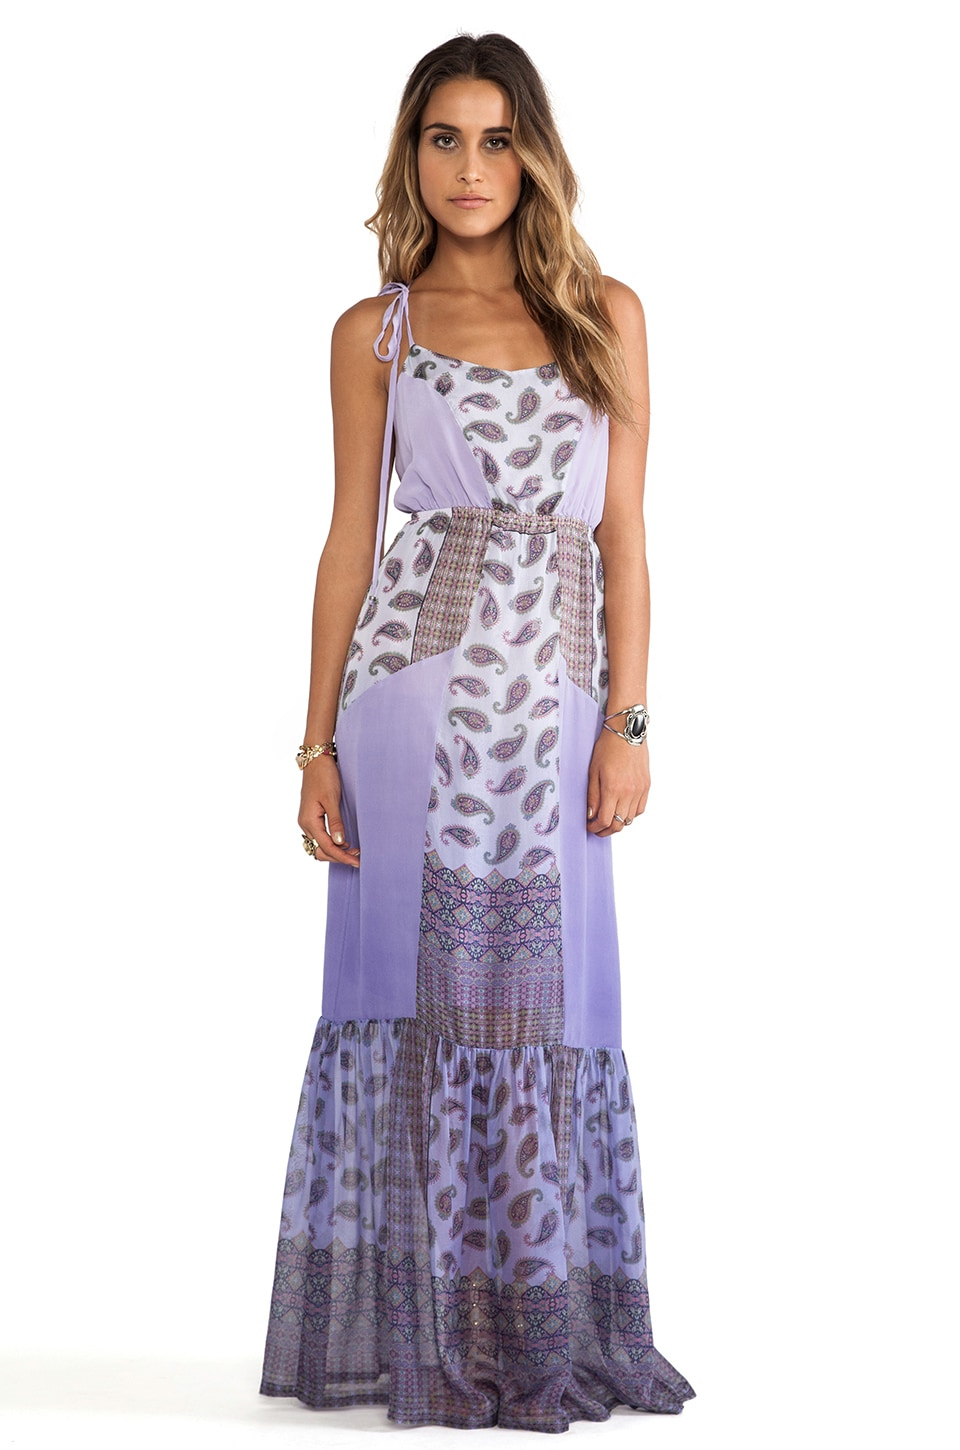 Gypsy 05 Printed Chiffon Panel Maxi Dress in Lavender